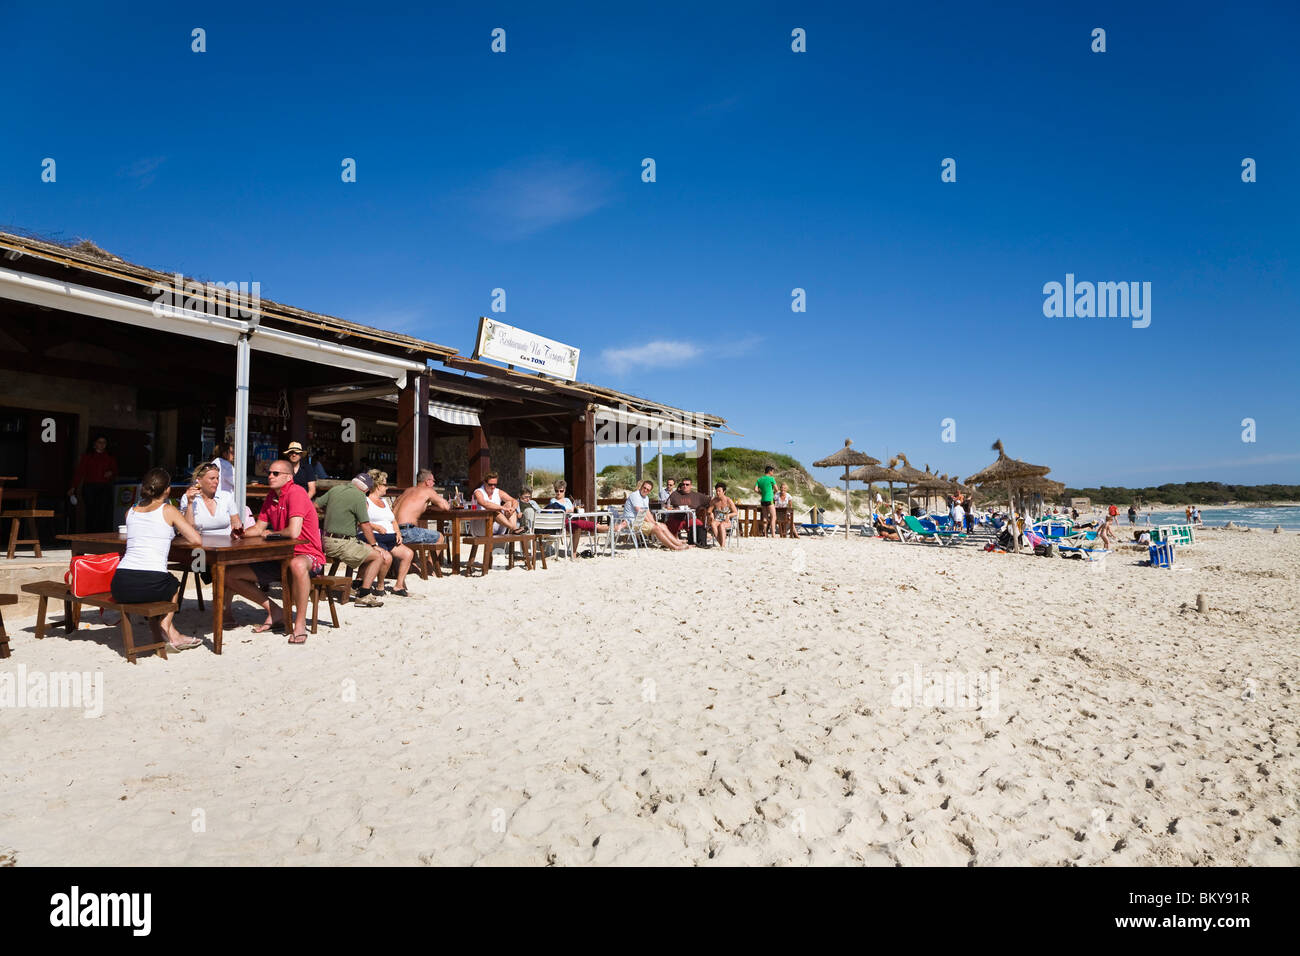 People sitting in a beach bar at the beach of Es Trenc, Mallorca, Balearic Islands, Spain, Europe - Stock Image